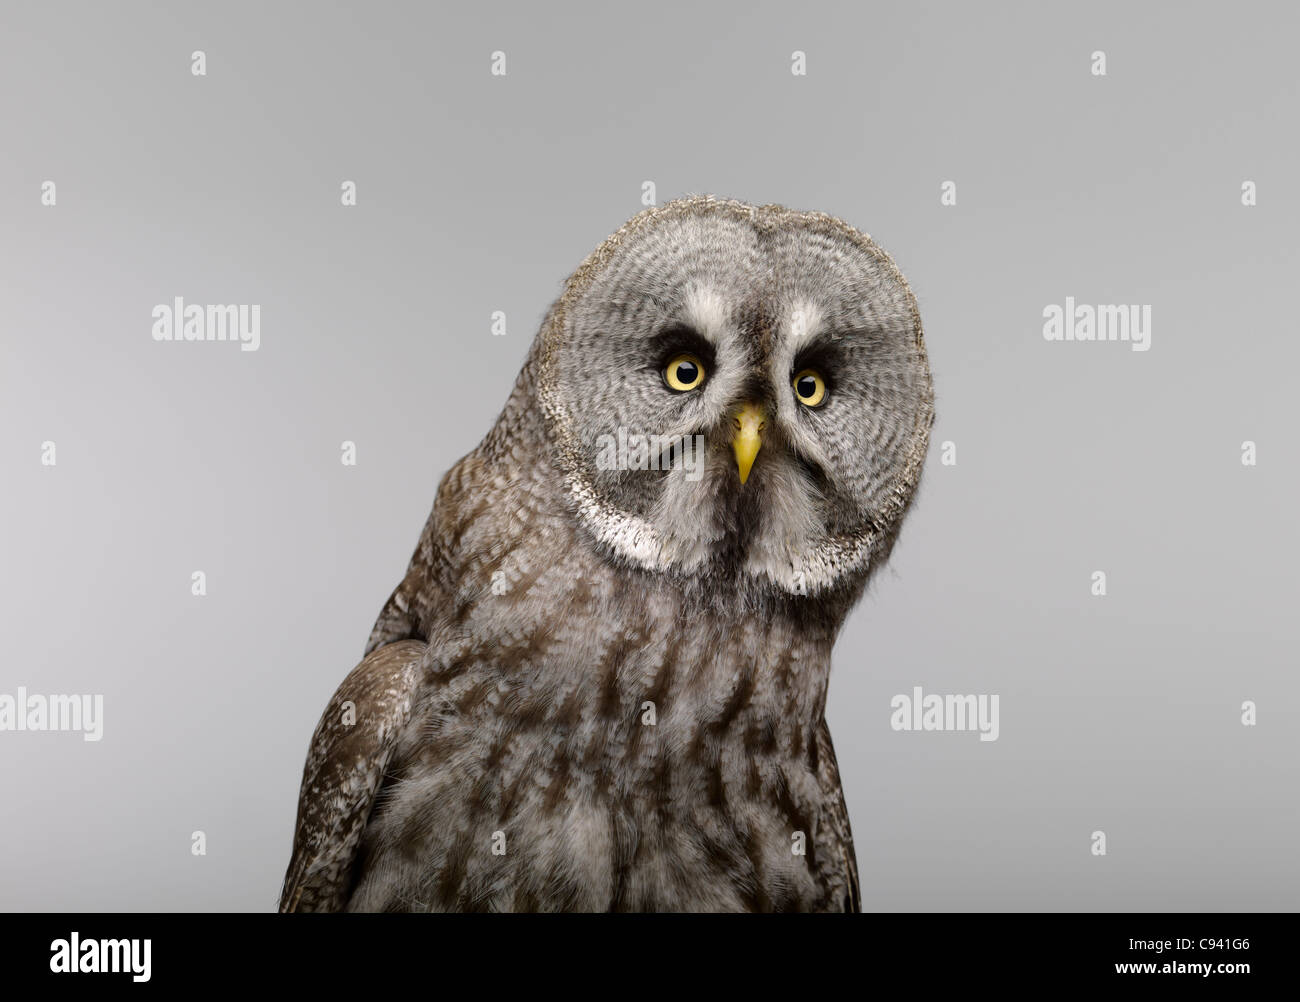 Great Grey Owl on a light grey background looking at the camera - Stock Image